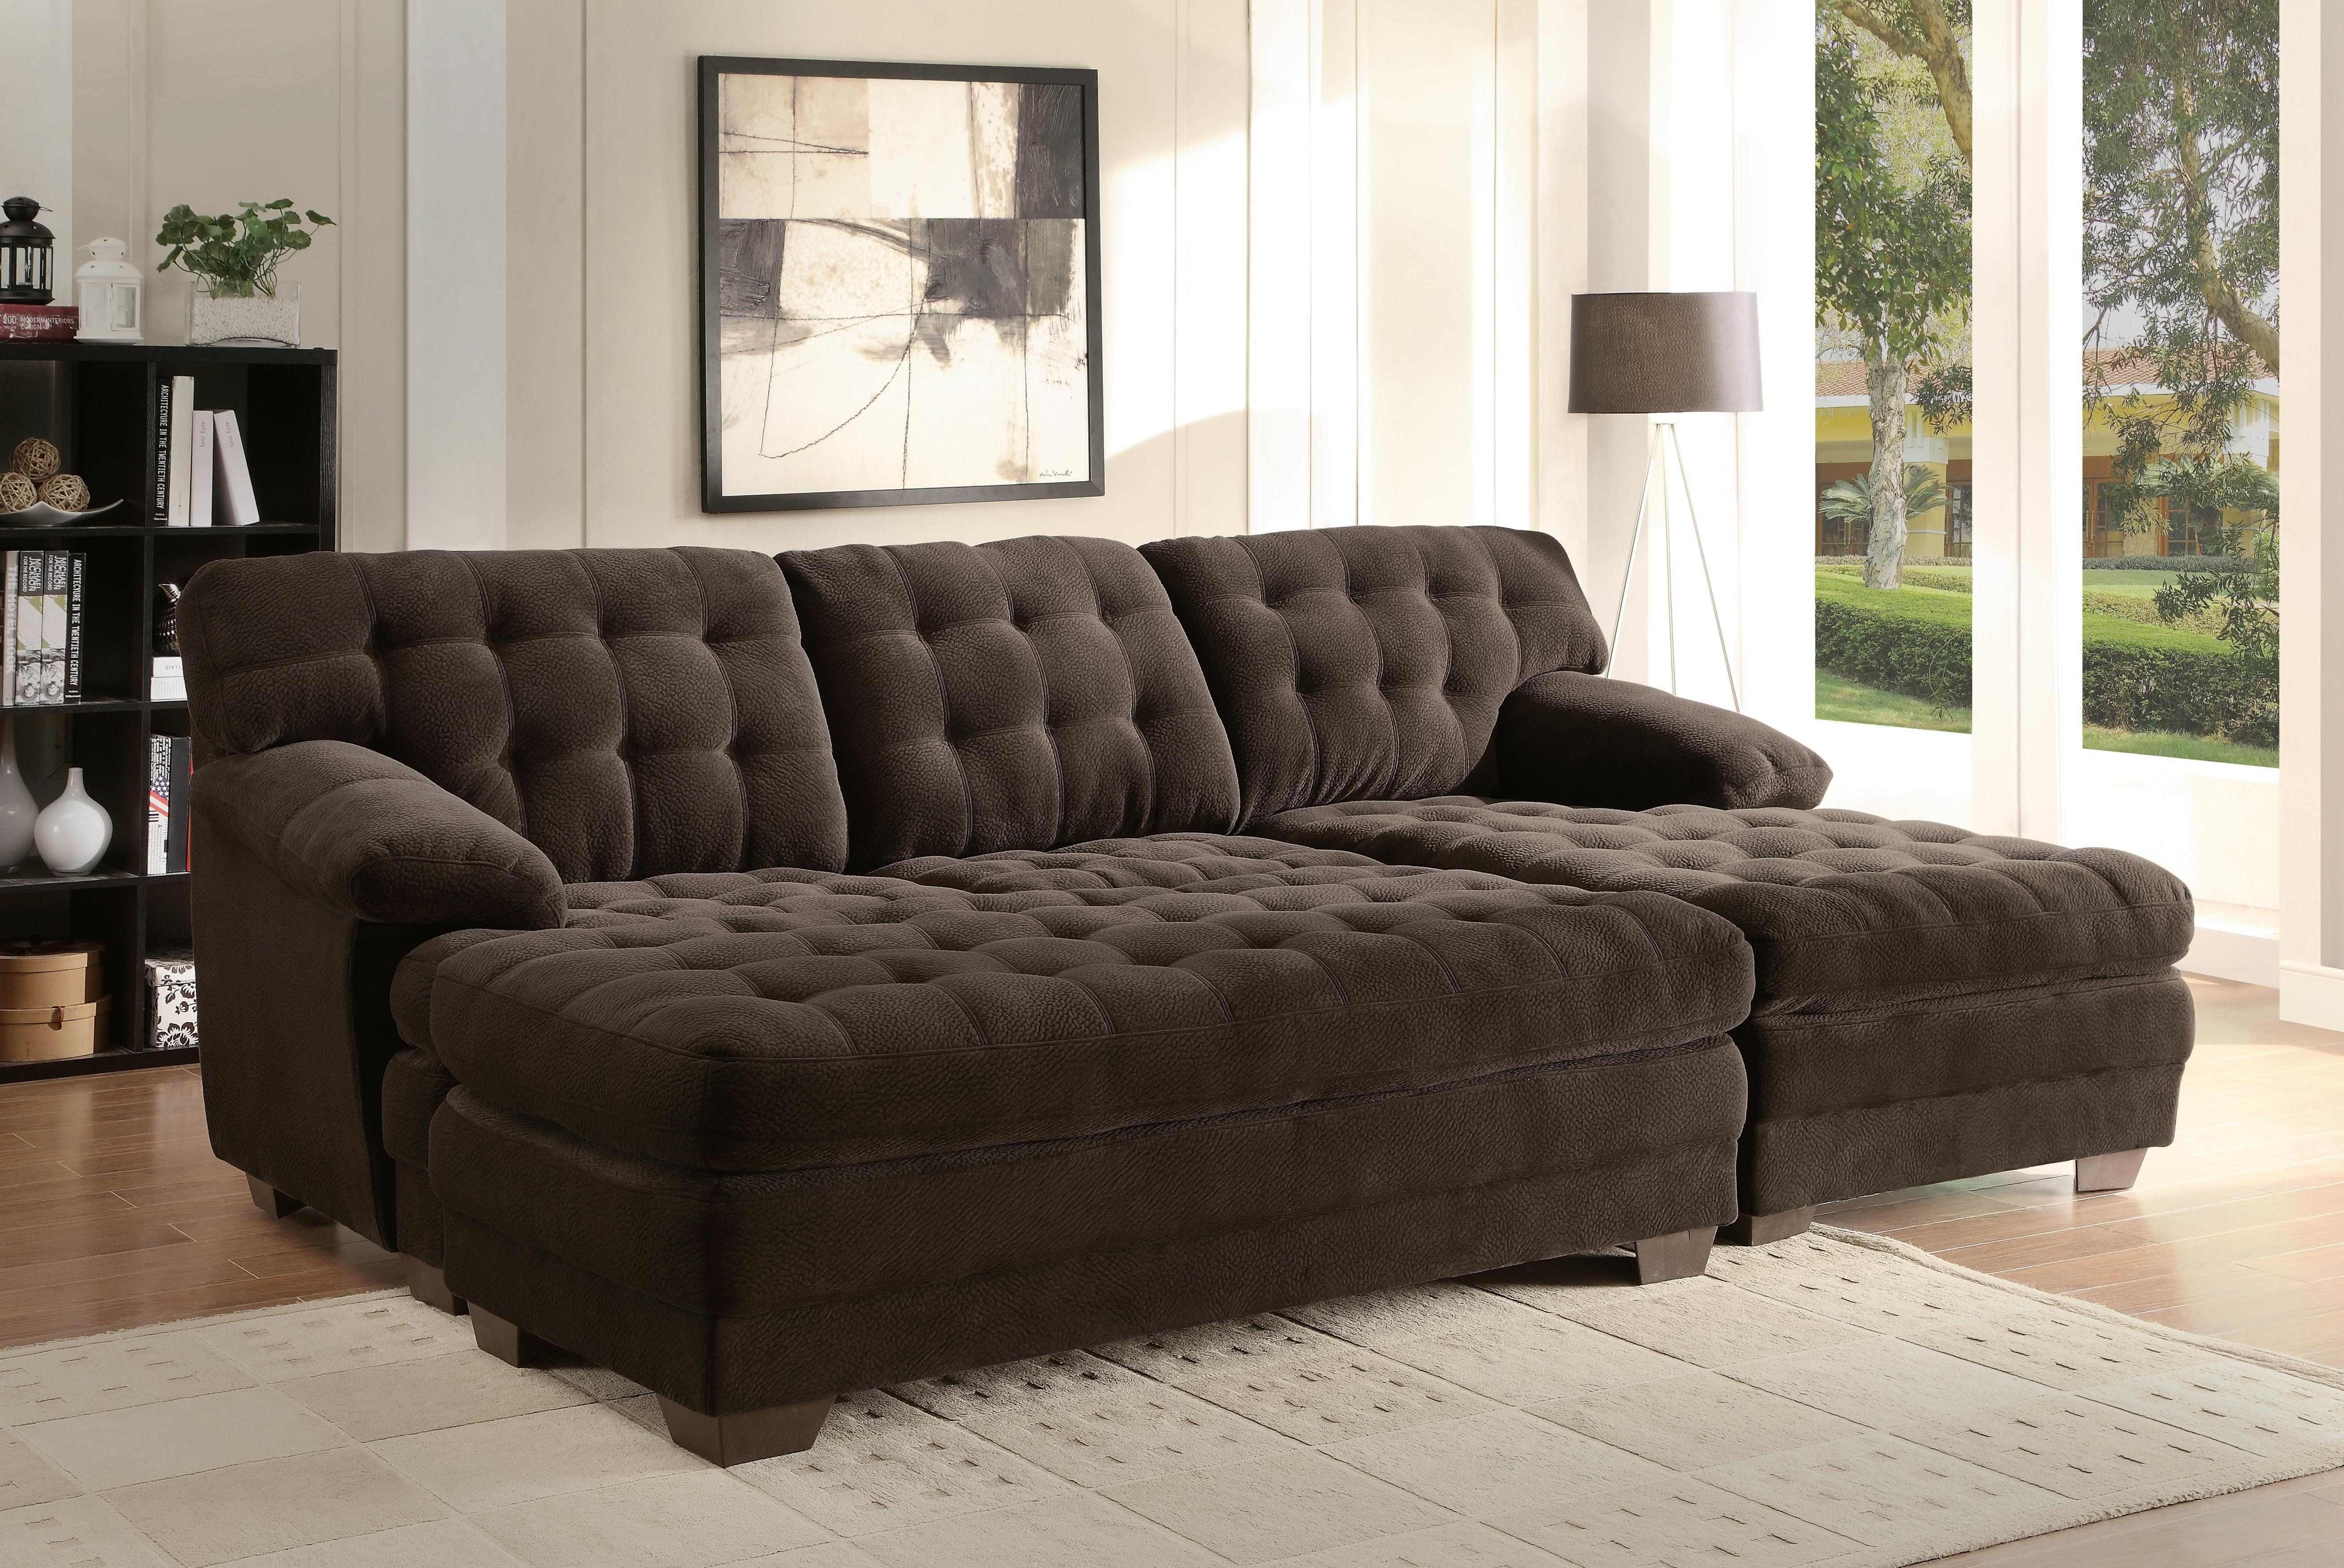 Sofa : Attractive Extra Large Sofa Extra Large Sofa Extra Large Inside Extra Large Sofas (View 7 of 10)